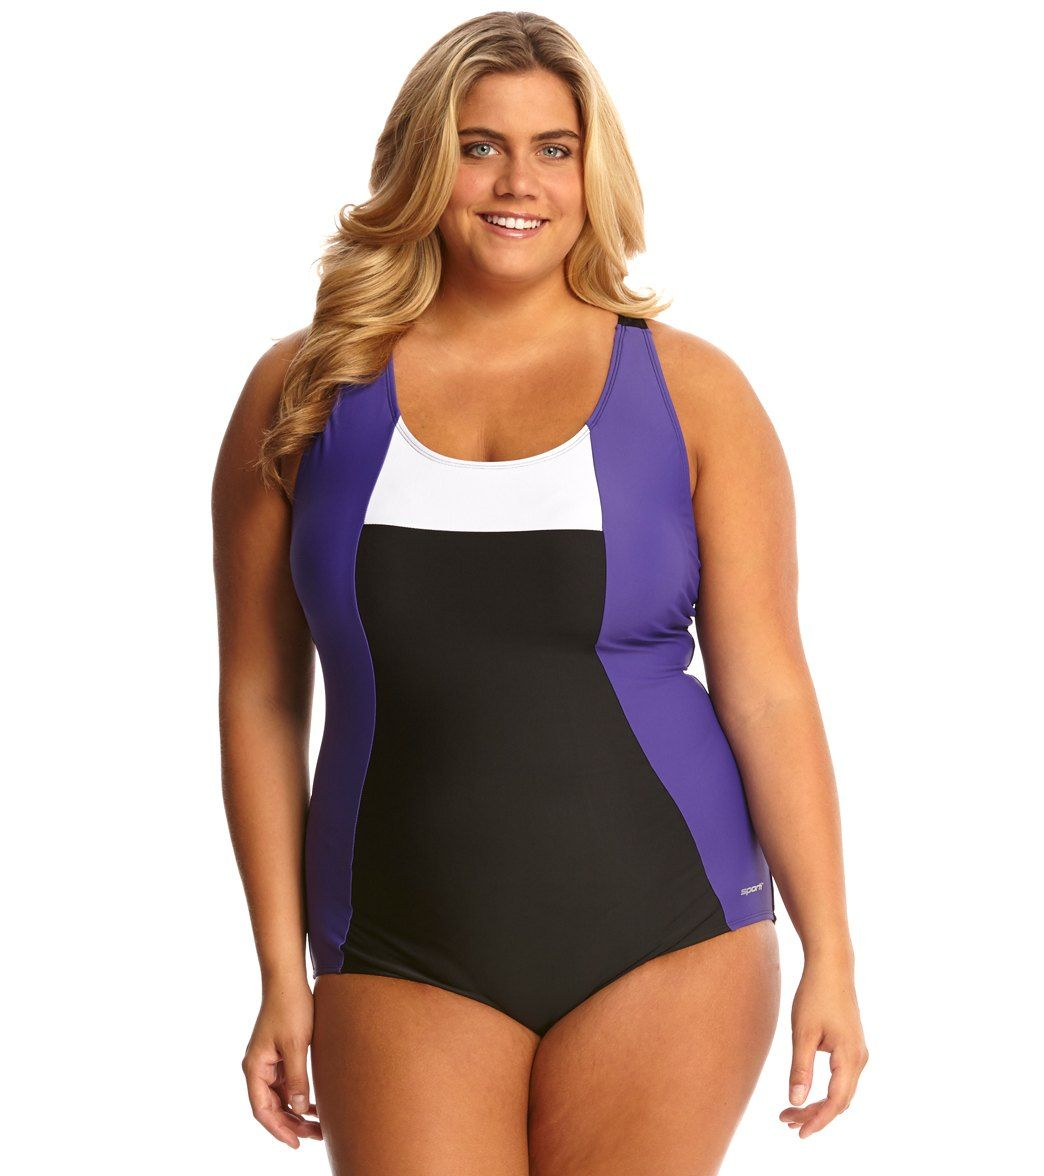 66315f60f9d Sporti Plus Size Moderate Colorblock One Piece Swimsuit at SwimOutlet.com -  Free Shipping